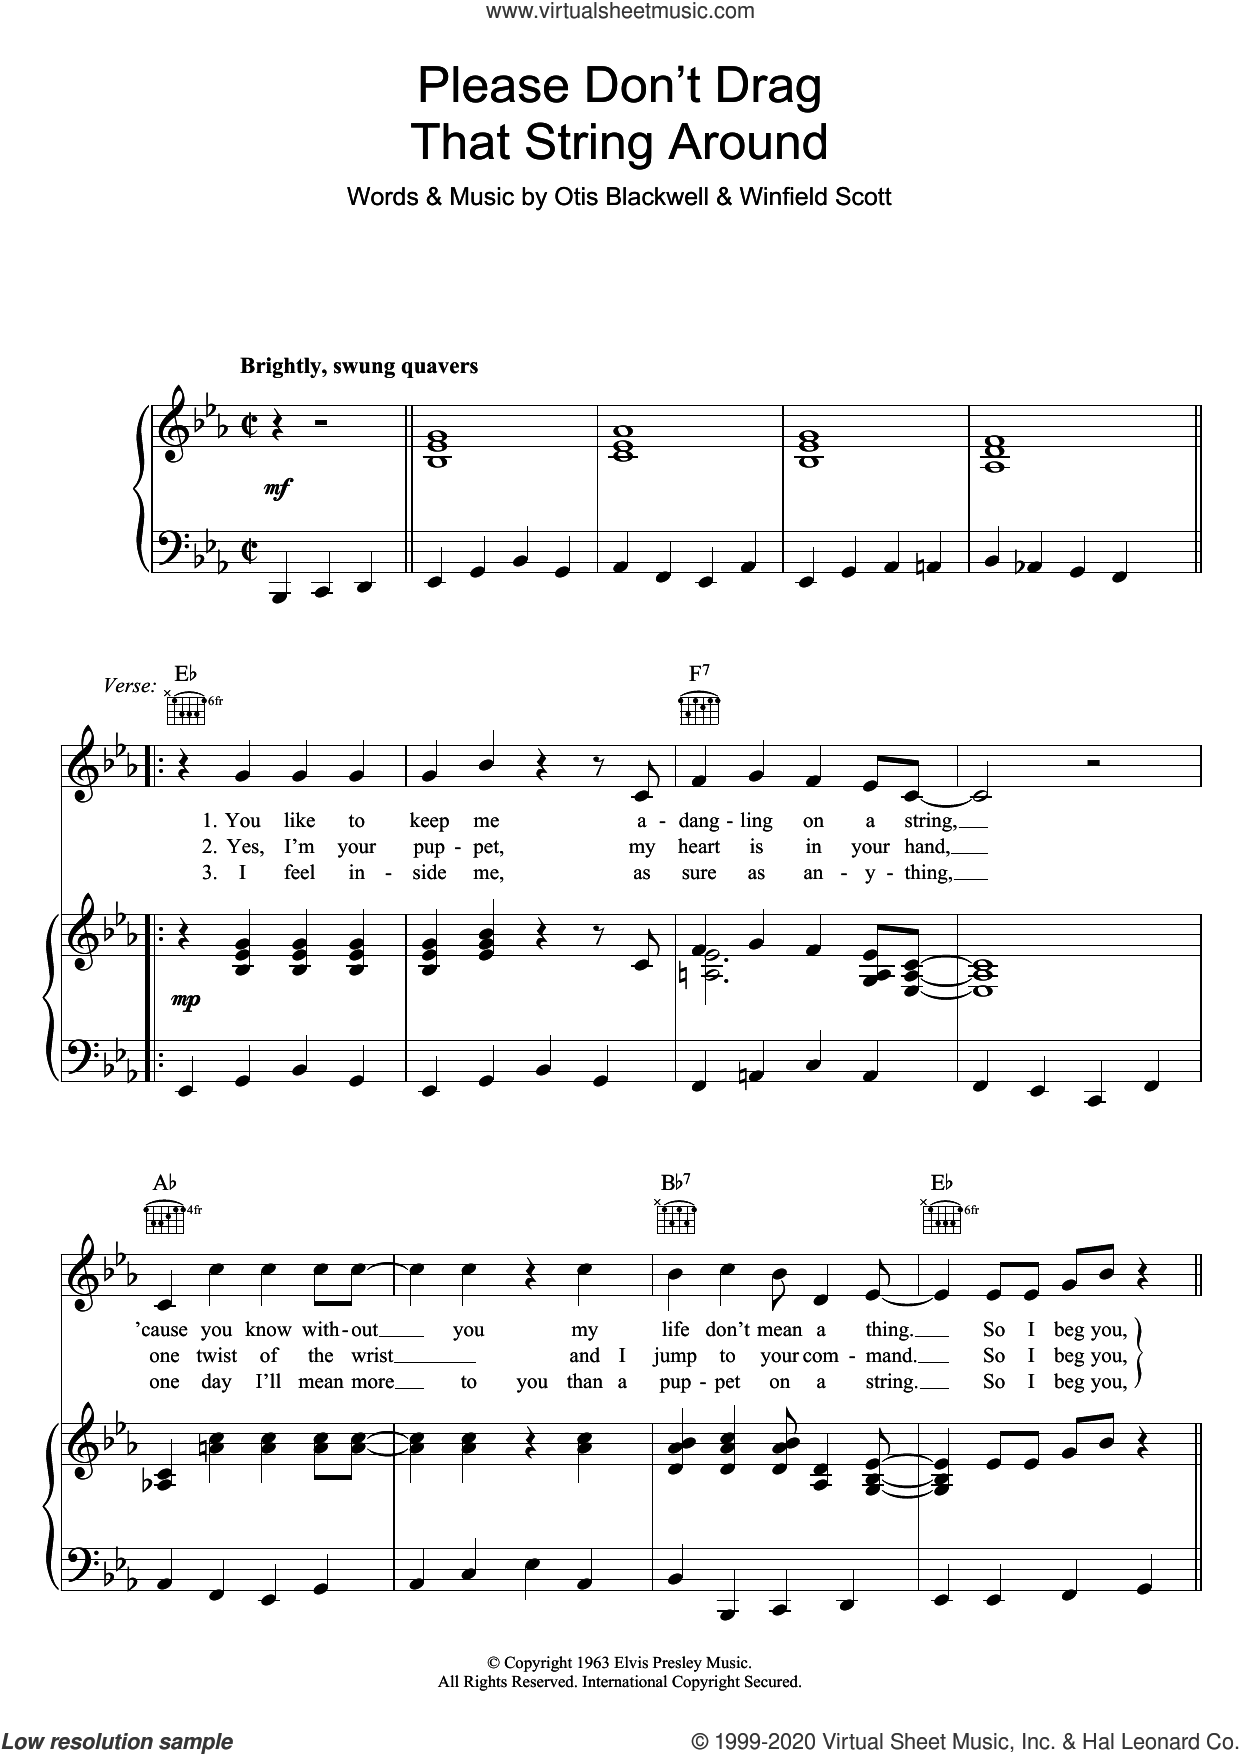 Please Don't Drag That String Around sheet music for voice, piano or guitar by Elvis Presley, Otis Blackwell and Winfield Scott, intermediate skill level